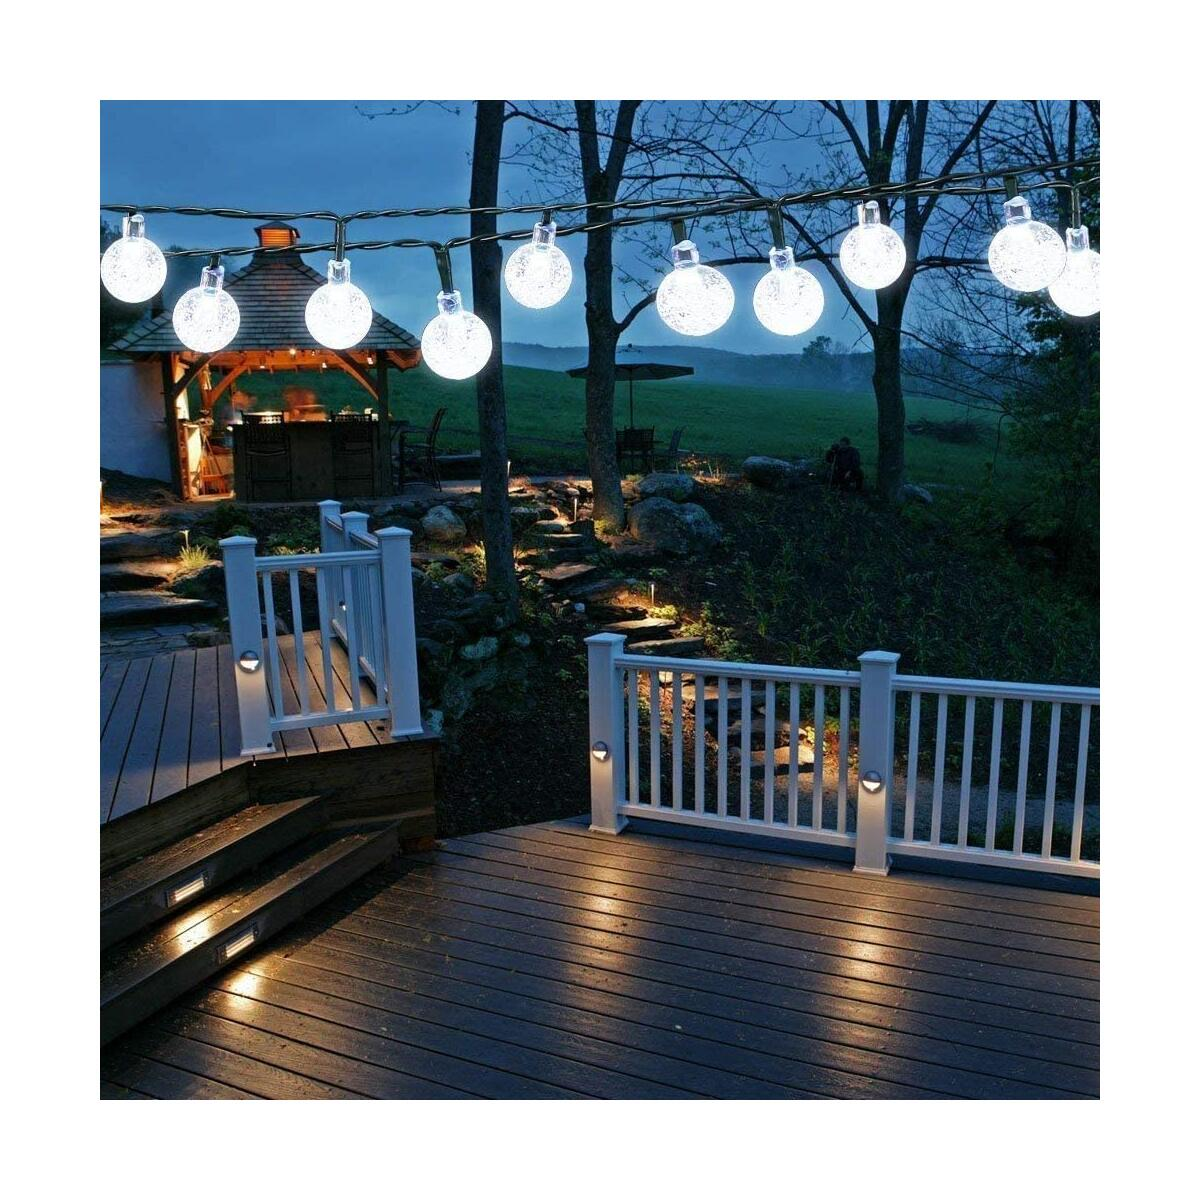 Solar String Lights Outdoor, 50LED 7M/24Ft Solar Garden Light Waterproof, 8 Modes Indoor/Outdoor Fairy Lights Globe for Garden, Patio, Yard, Home, Party, Wedding, Festival Decoration (Clear White)